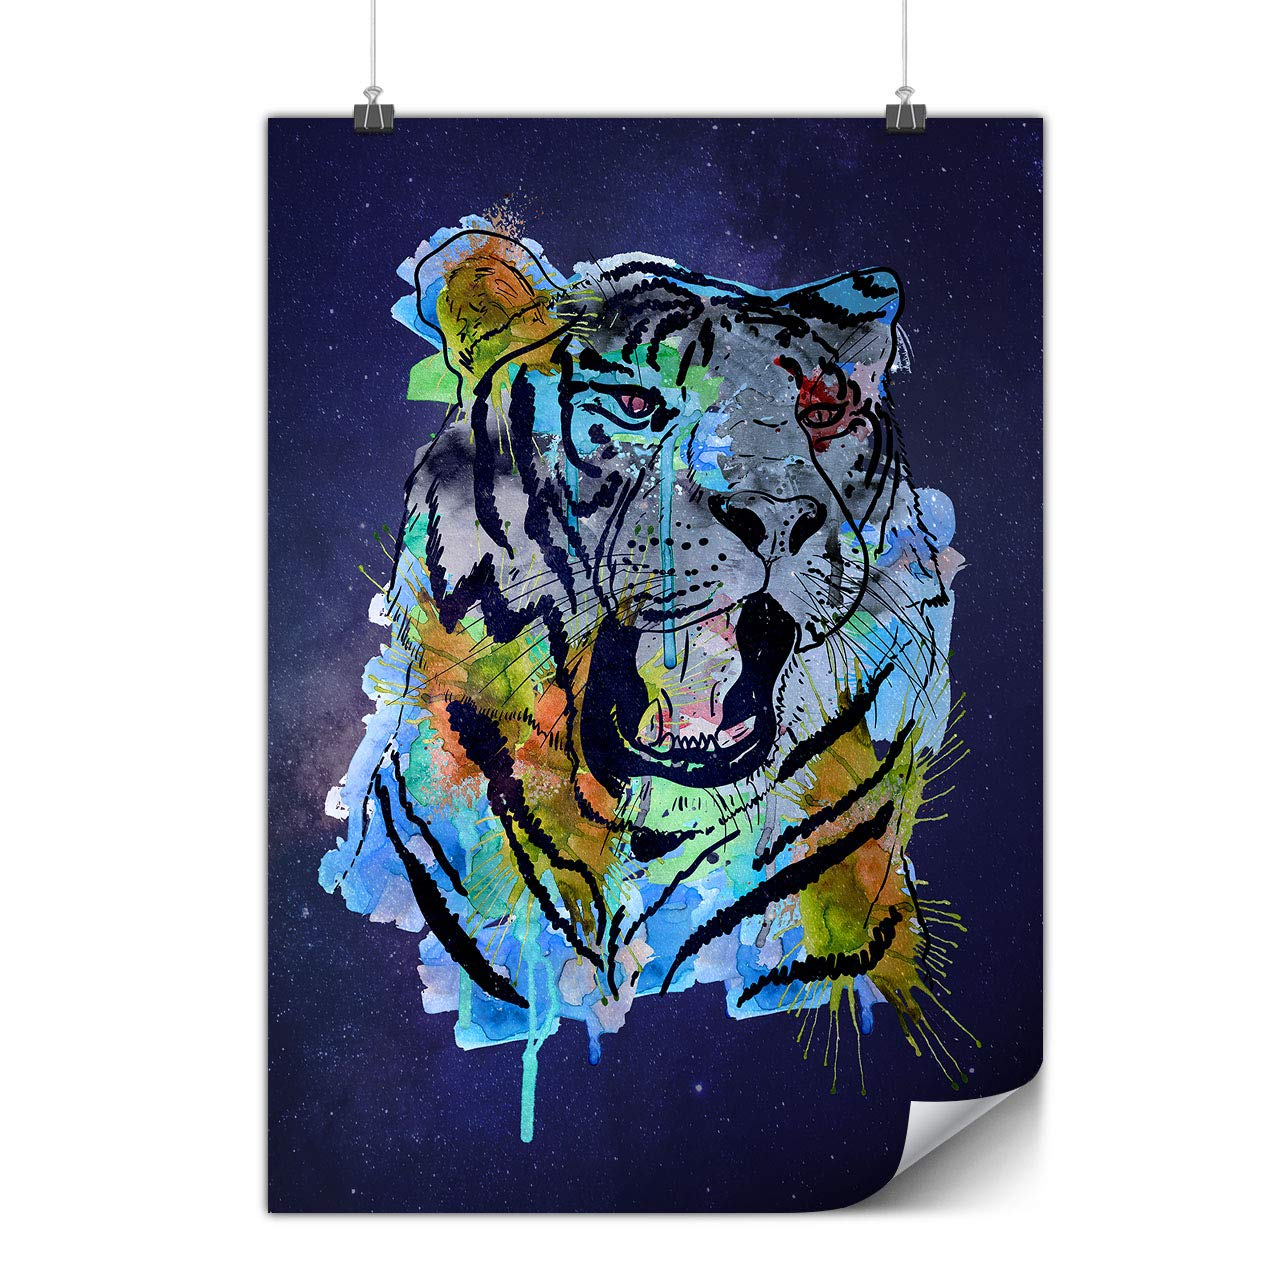 Tiger Art Paint Animal Poster Asia A4 (30cm x 21cm) GLOSSY Ideal for  Framing, Easy to Hang, Heavy Weight Paper Art By Wellcoda: Amazon.ca: Home  & Kitchen